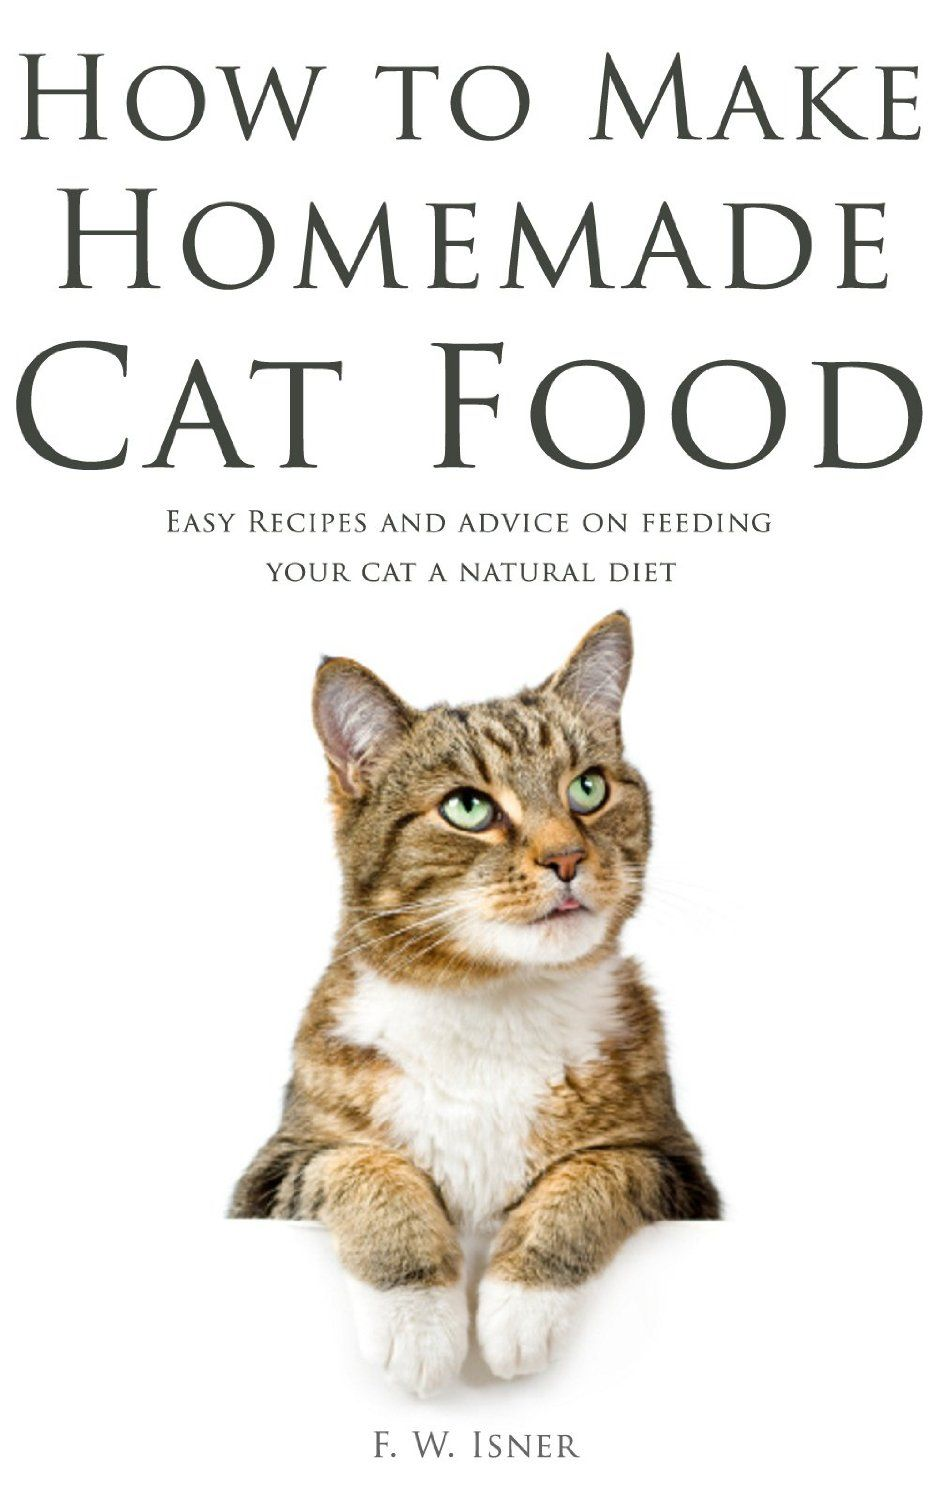 How to make homemade cat food easy recipes and advice on